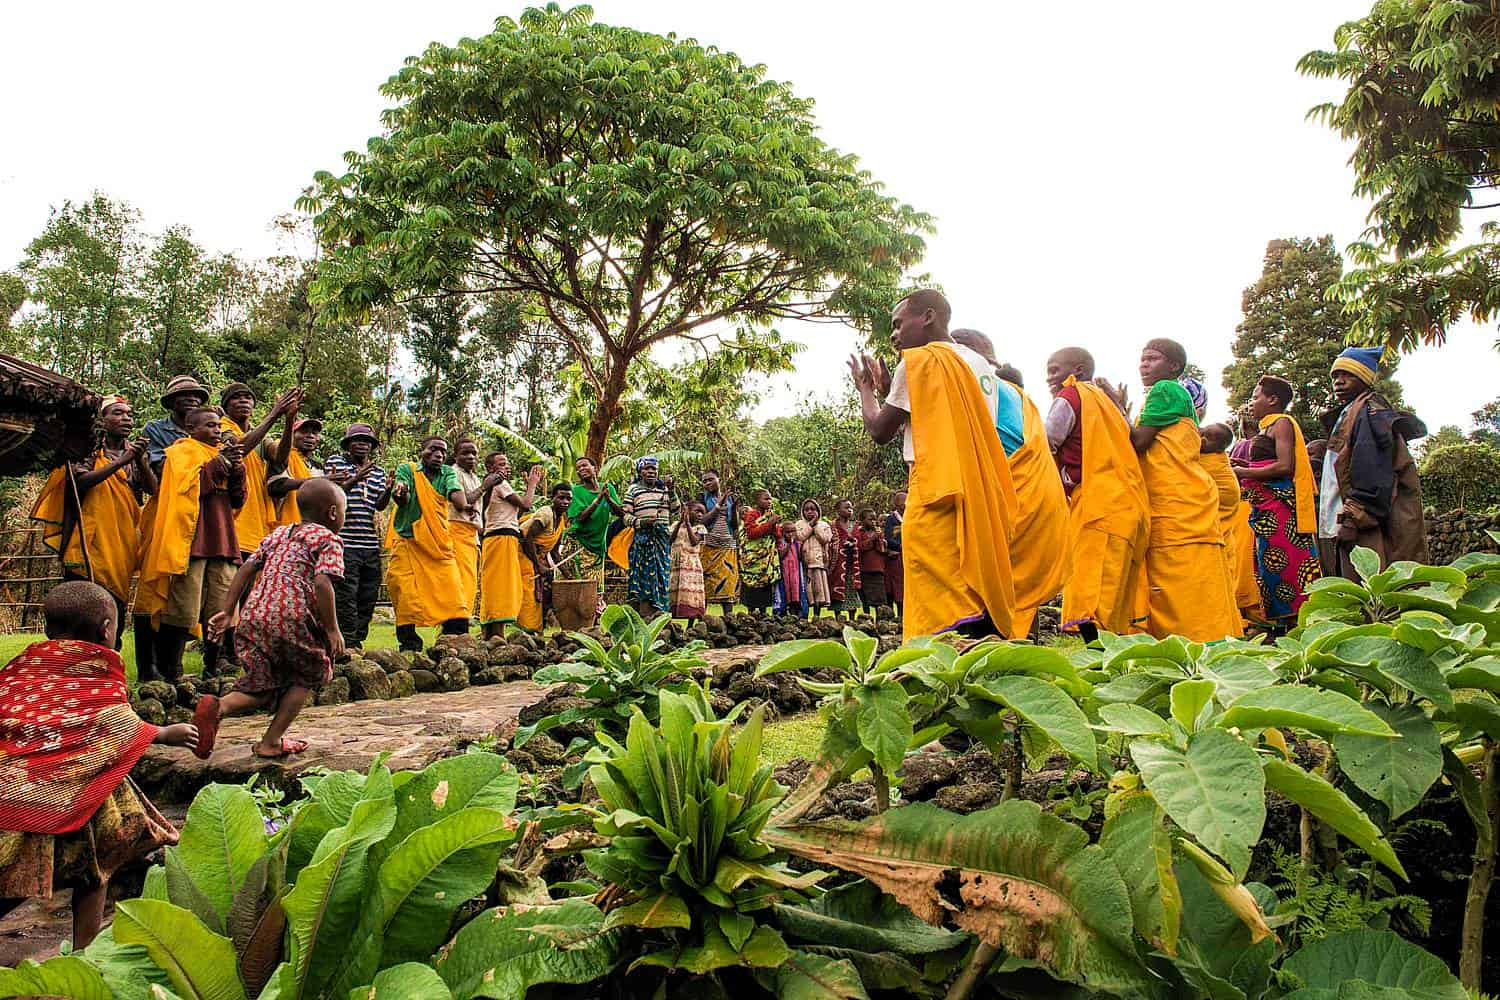 Uganda Offers A Fascinating Cultural, Religious Inclusivity & Diversity During Your Travels